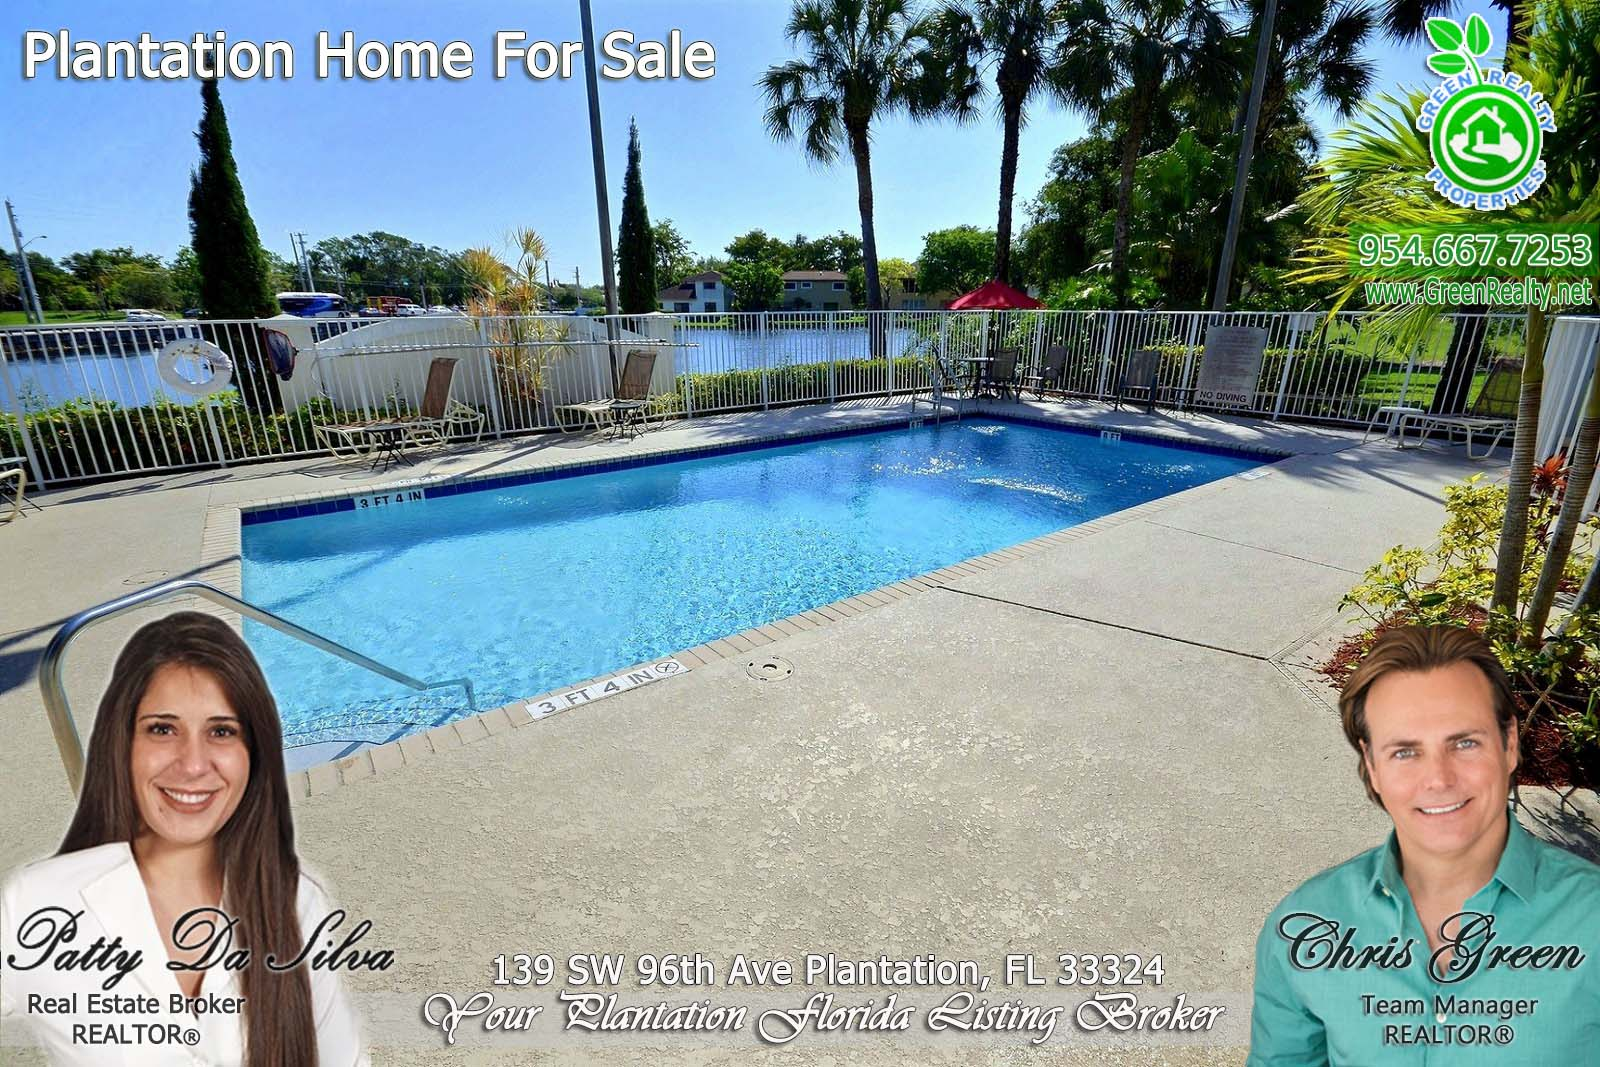 24 Plantation Florida Homes For Sale (1)